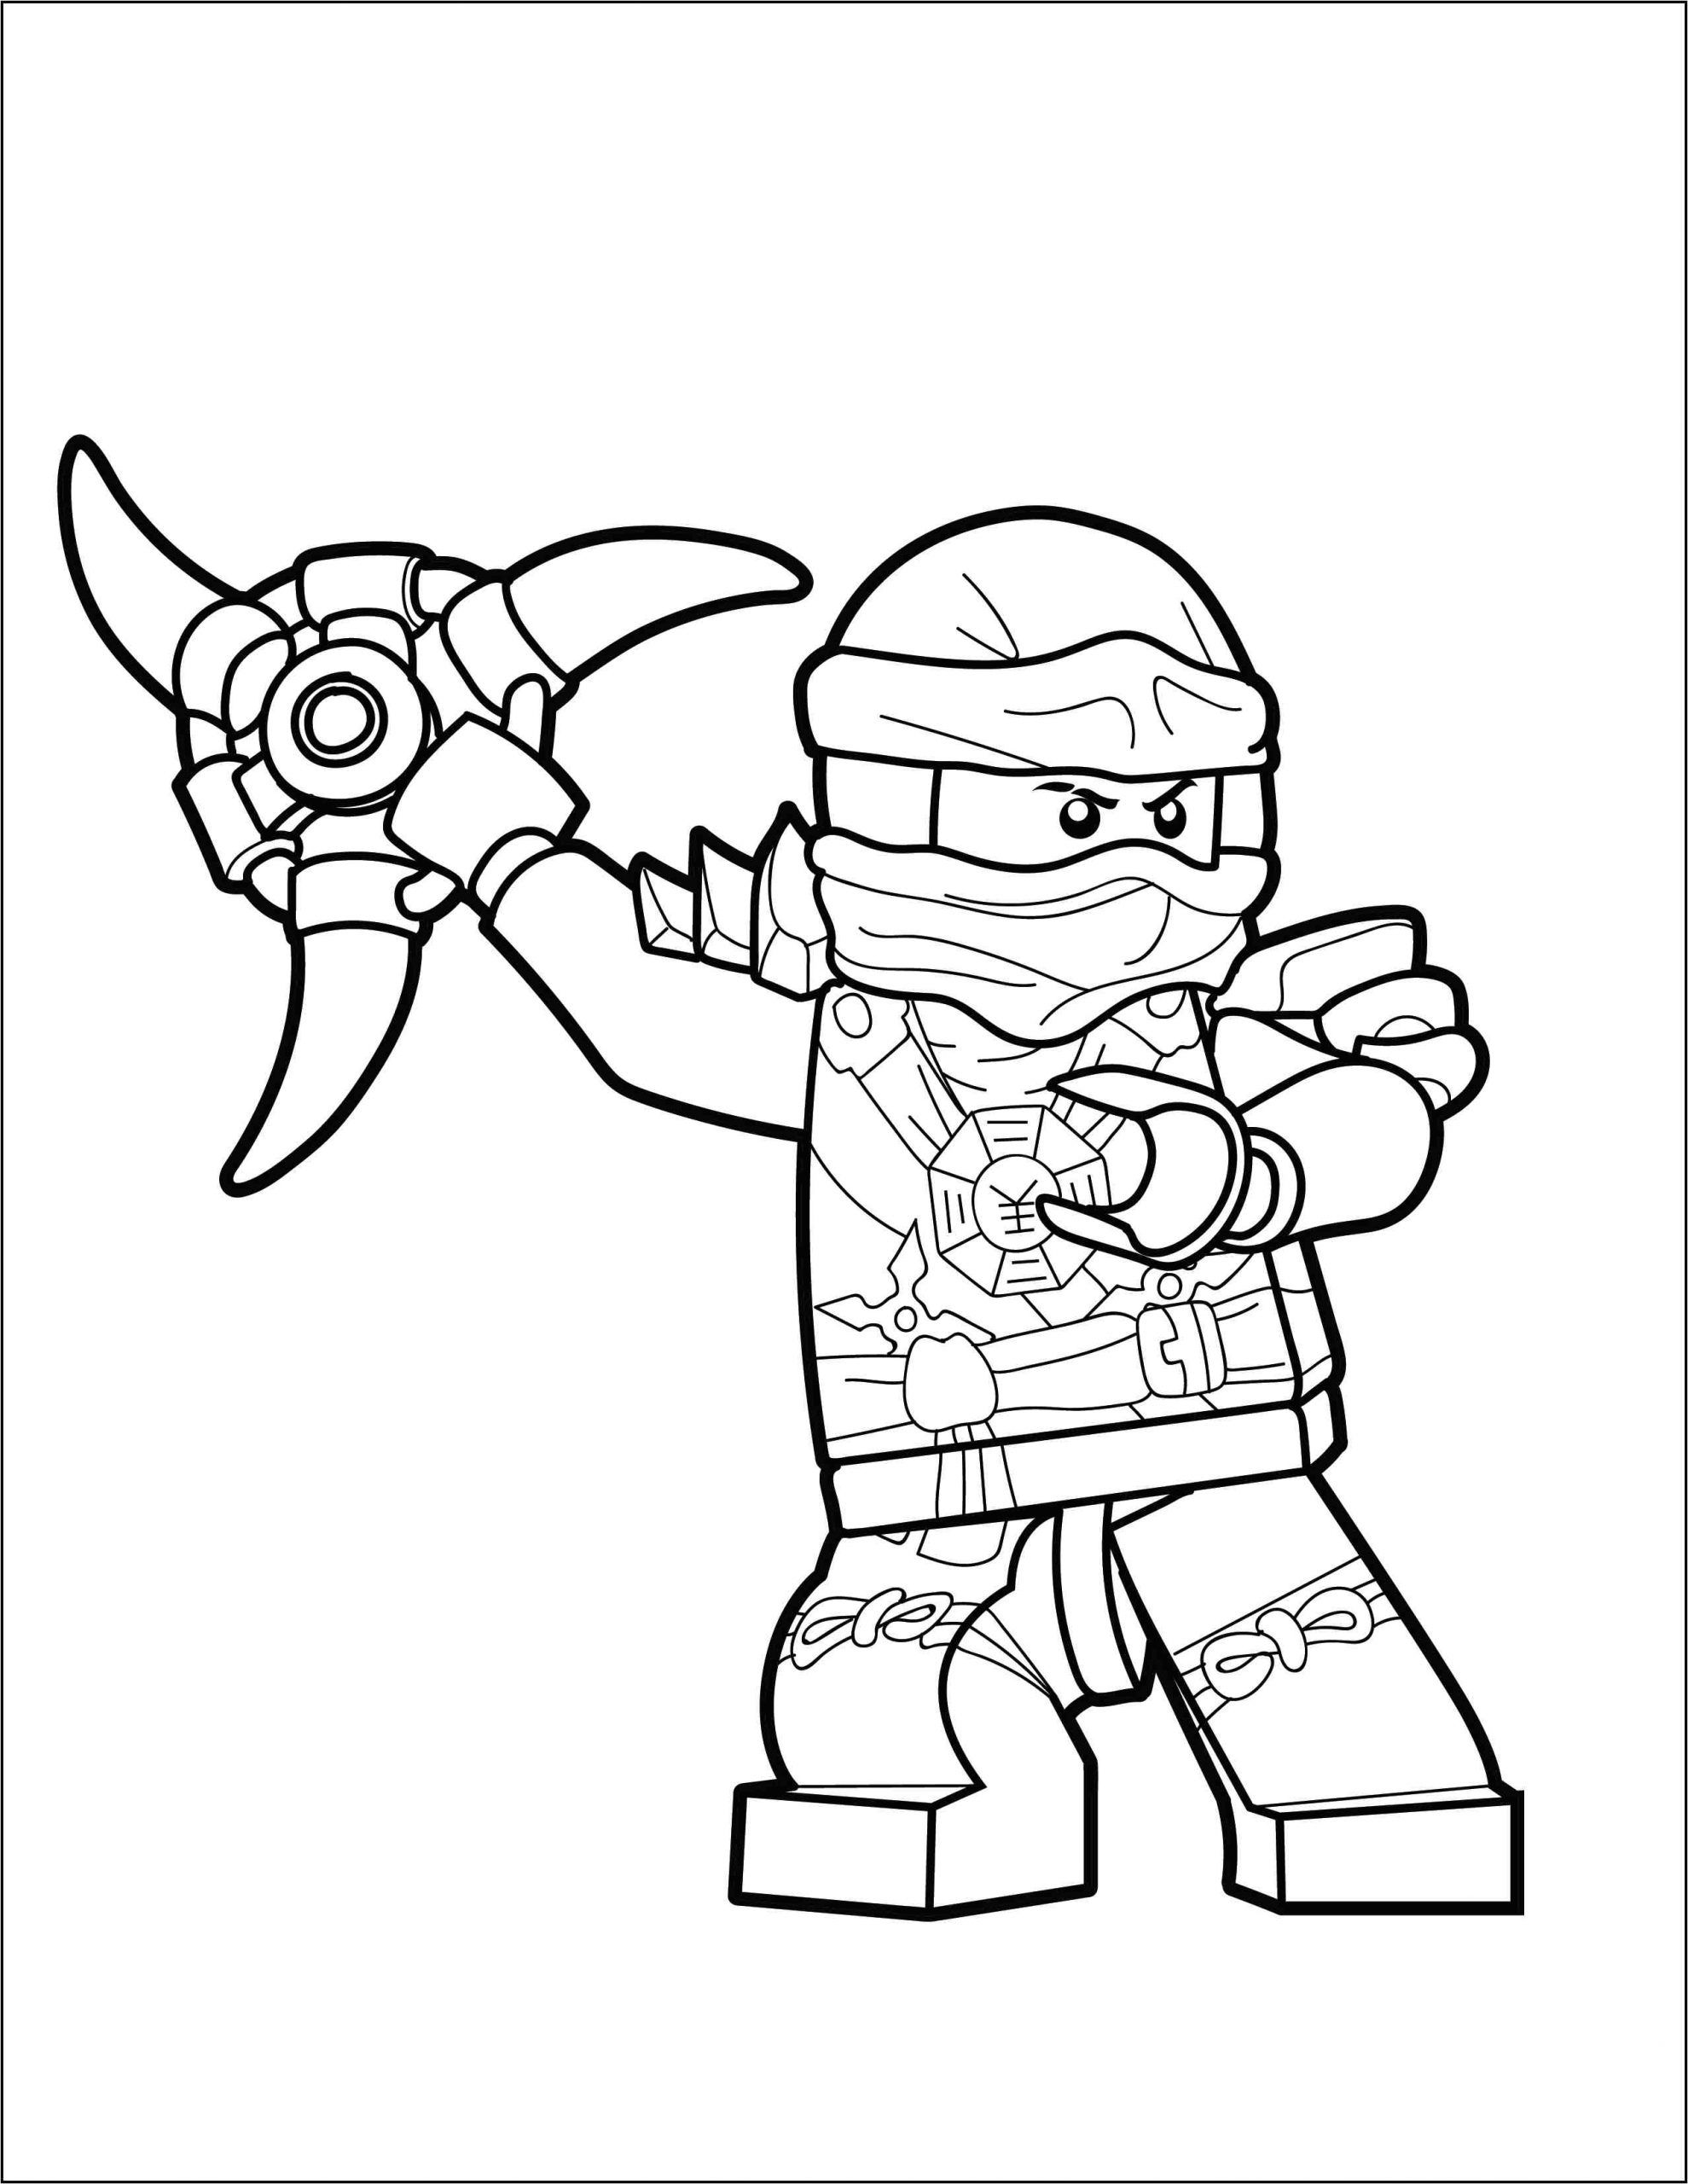 Lego Ninjago Coloring Pages Lloyd Lego Movie Coloring Pages Ninjago Coloring Pages Lego Coloring Pages